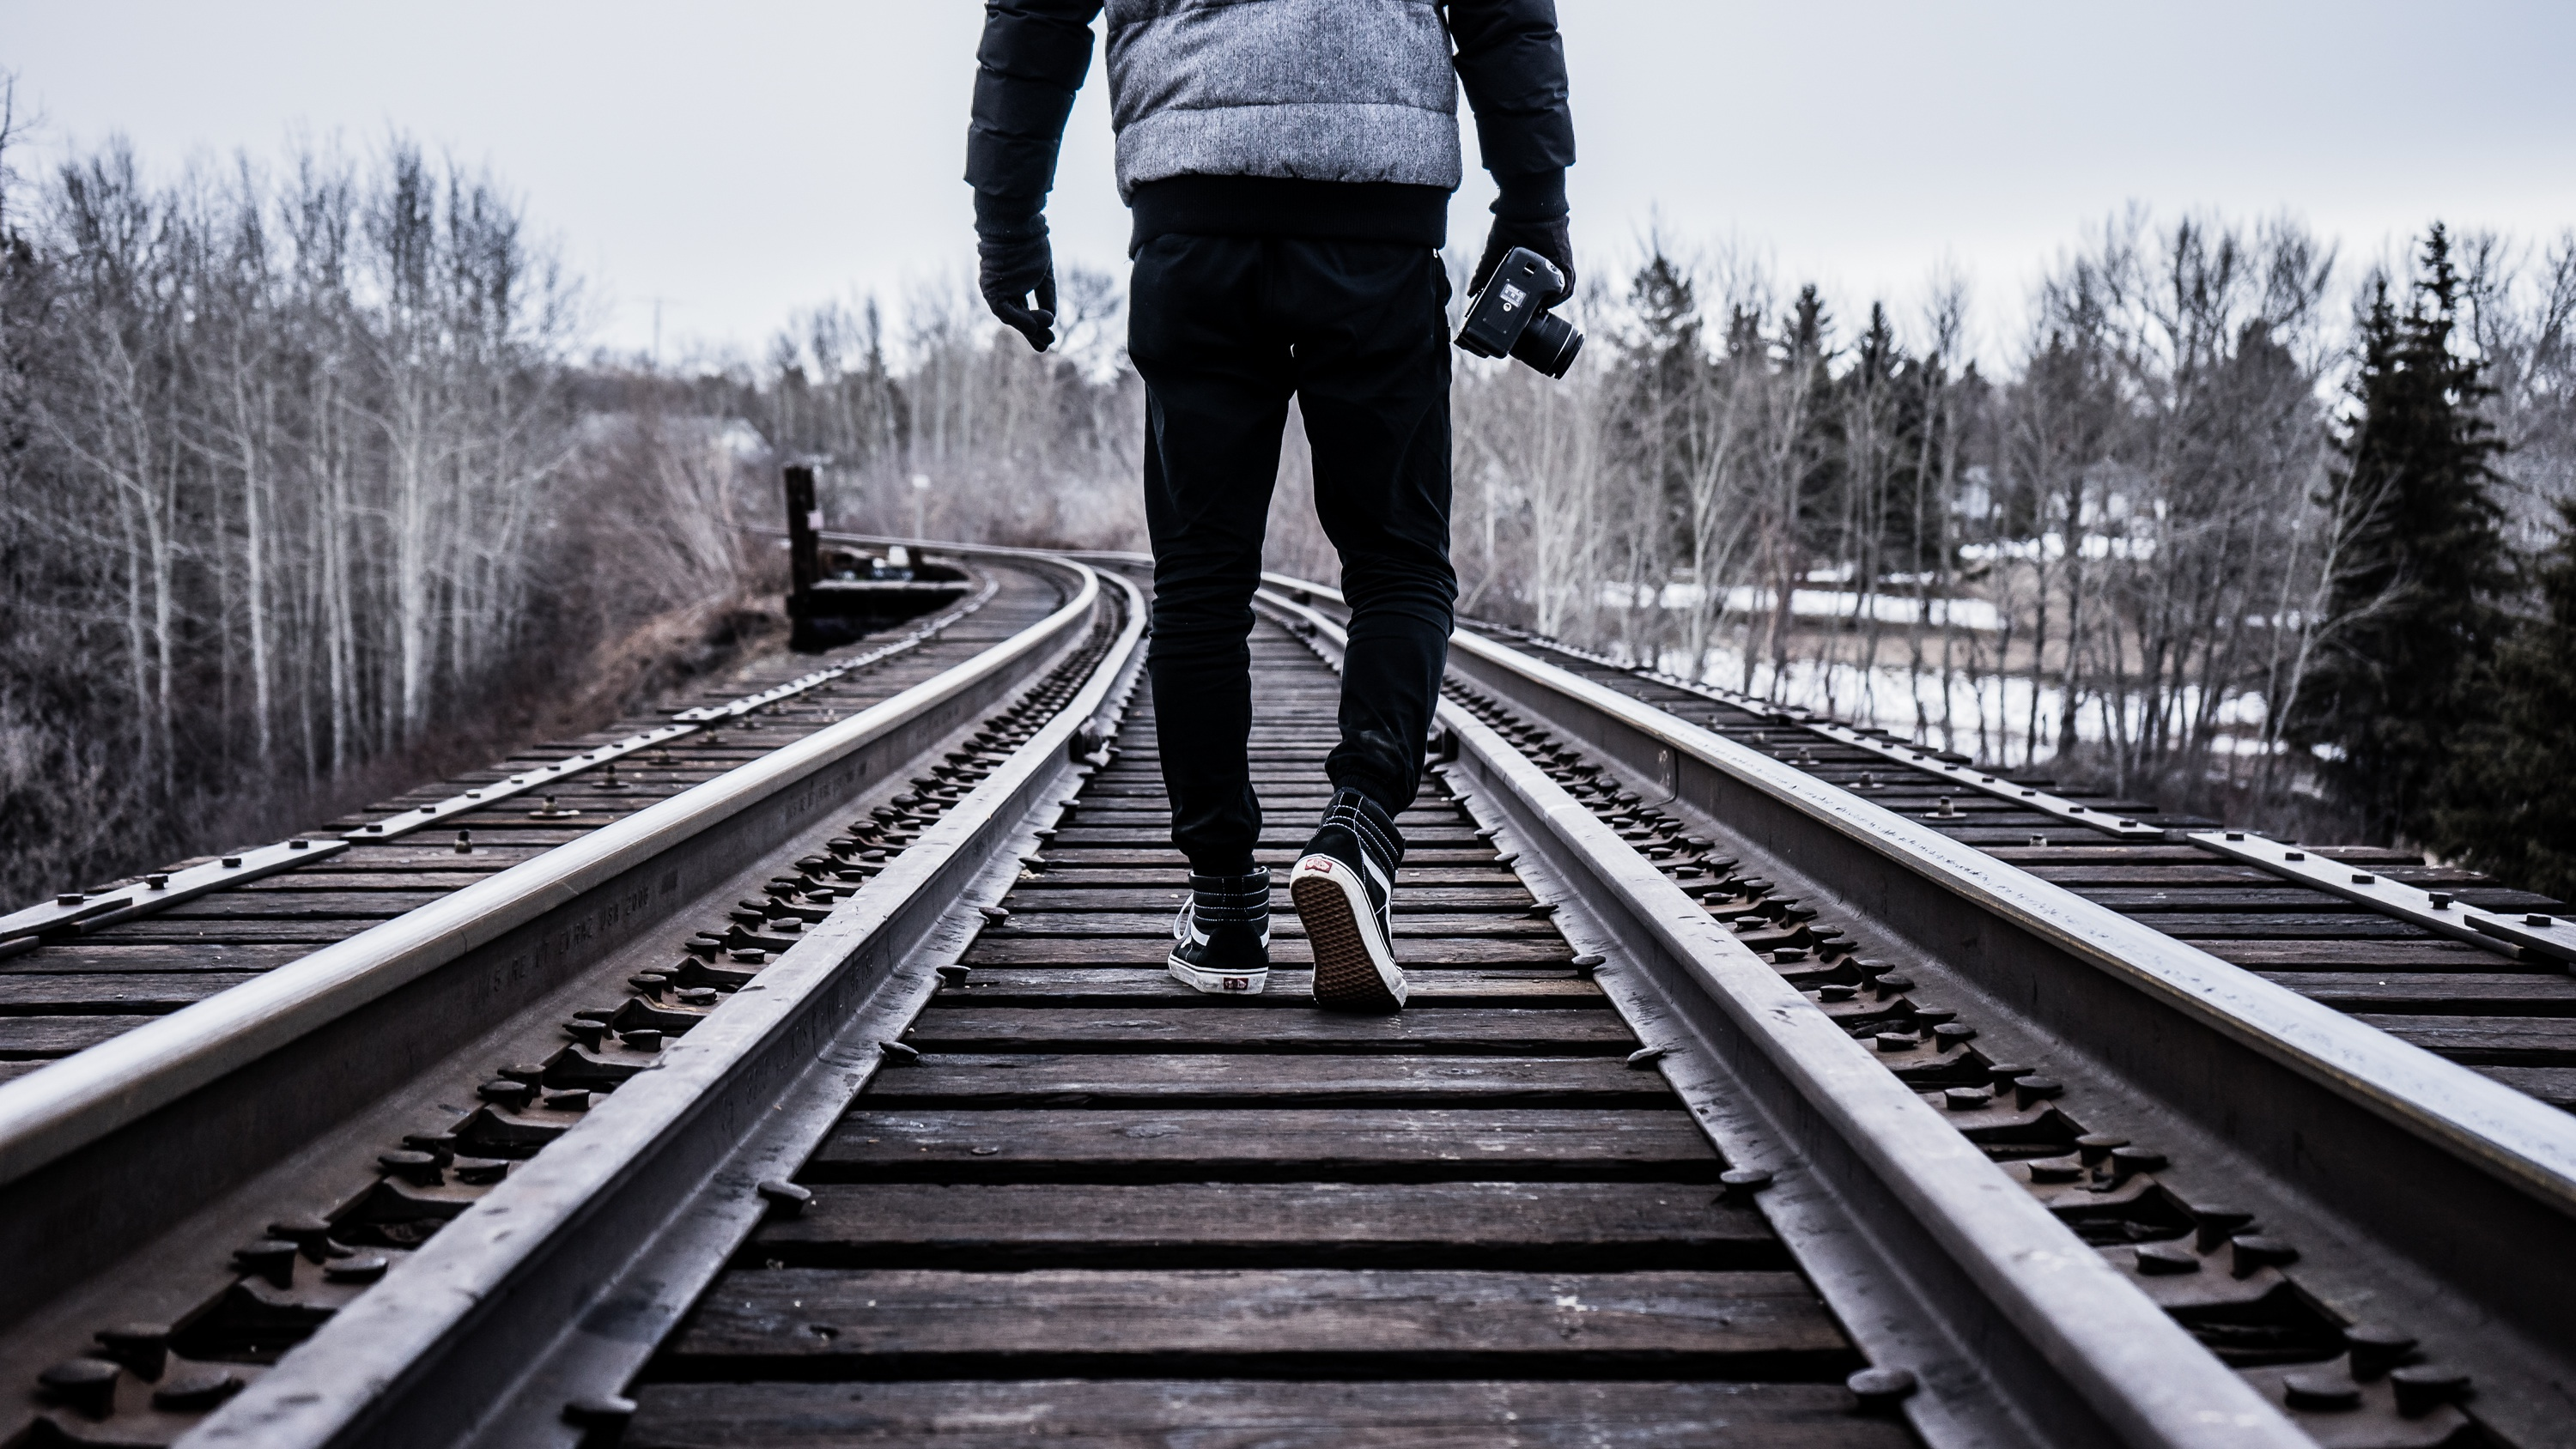 walking on the railroad tracks image free stock photo publicfree photos \u003e